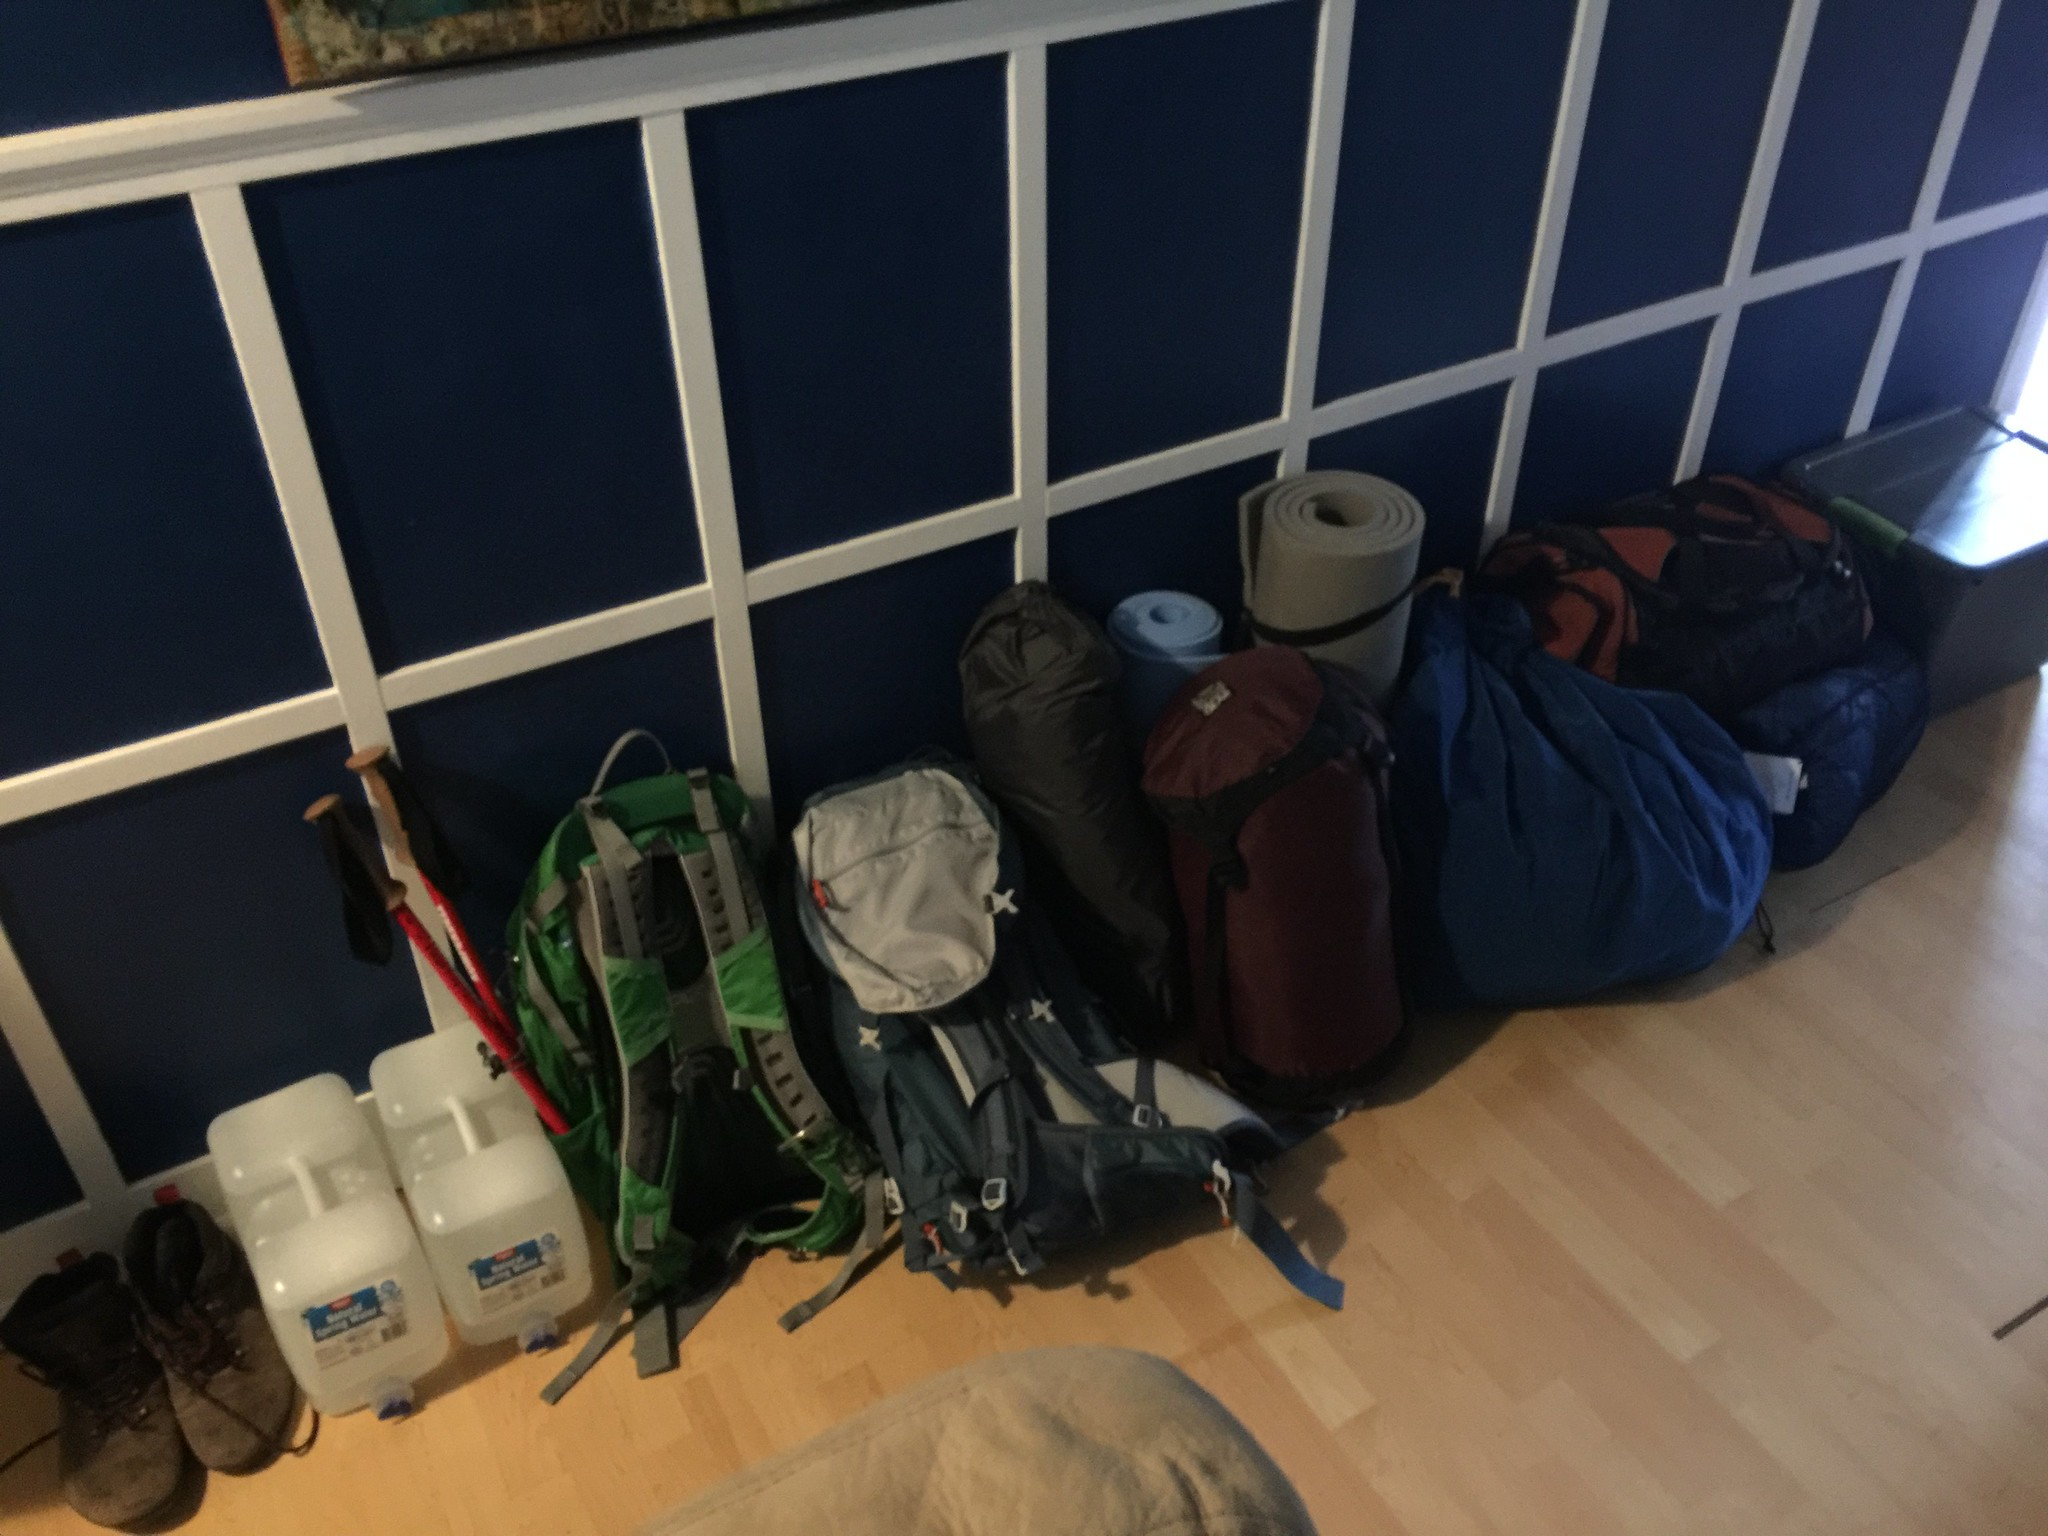 About half of our stuff: Boots, water jugs, several backpacks, and sleeping systems